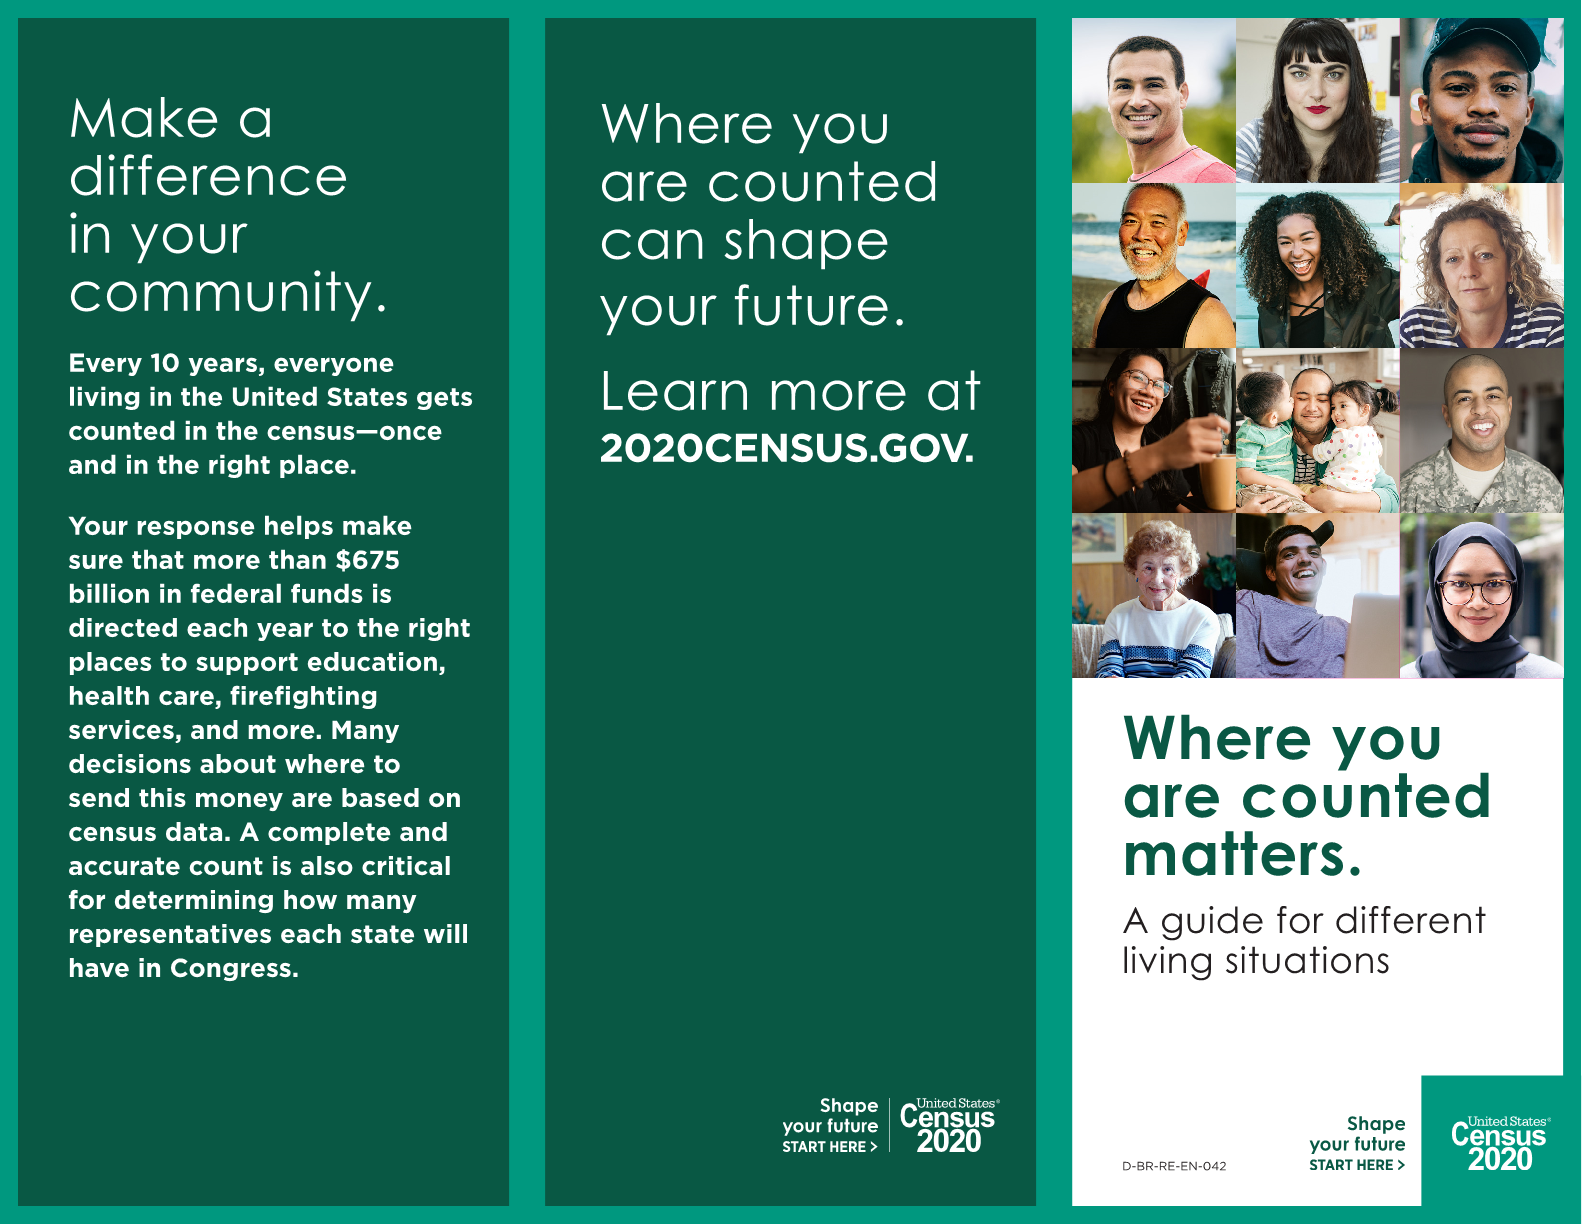 Where you are counted matters. A guide for different living situations